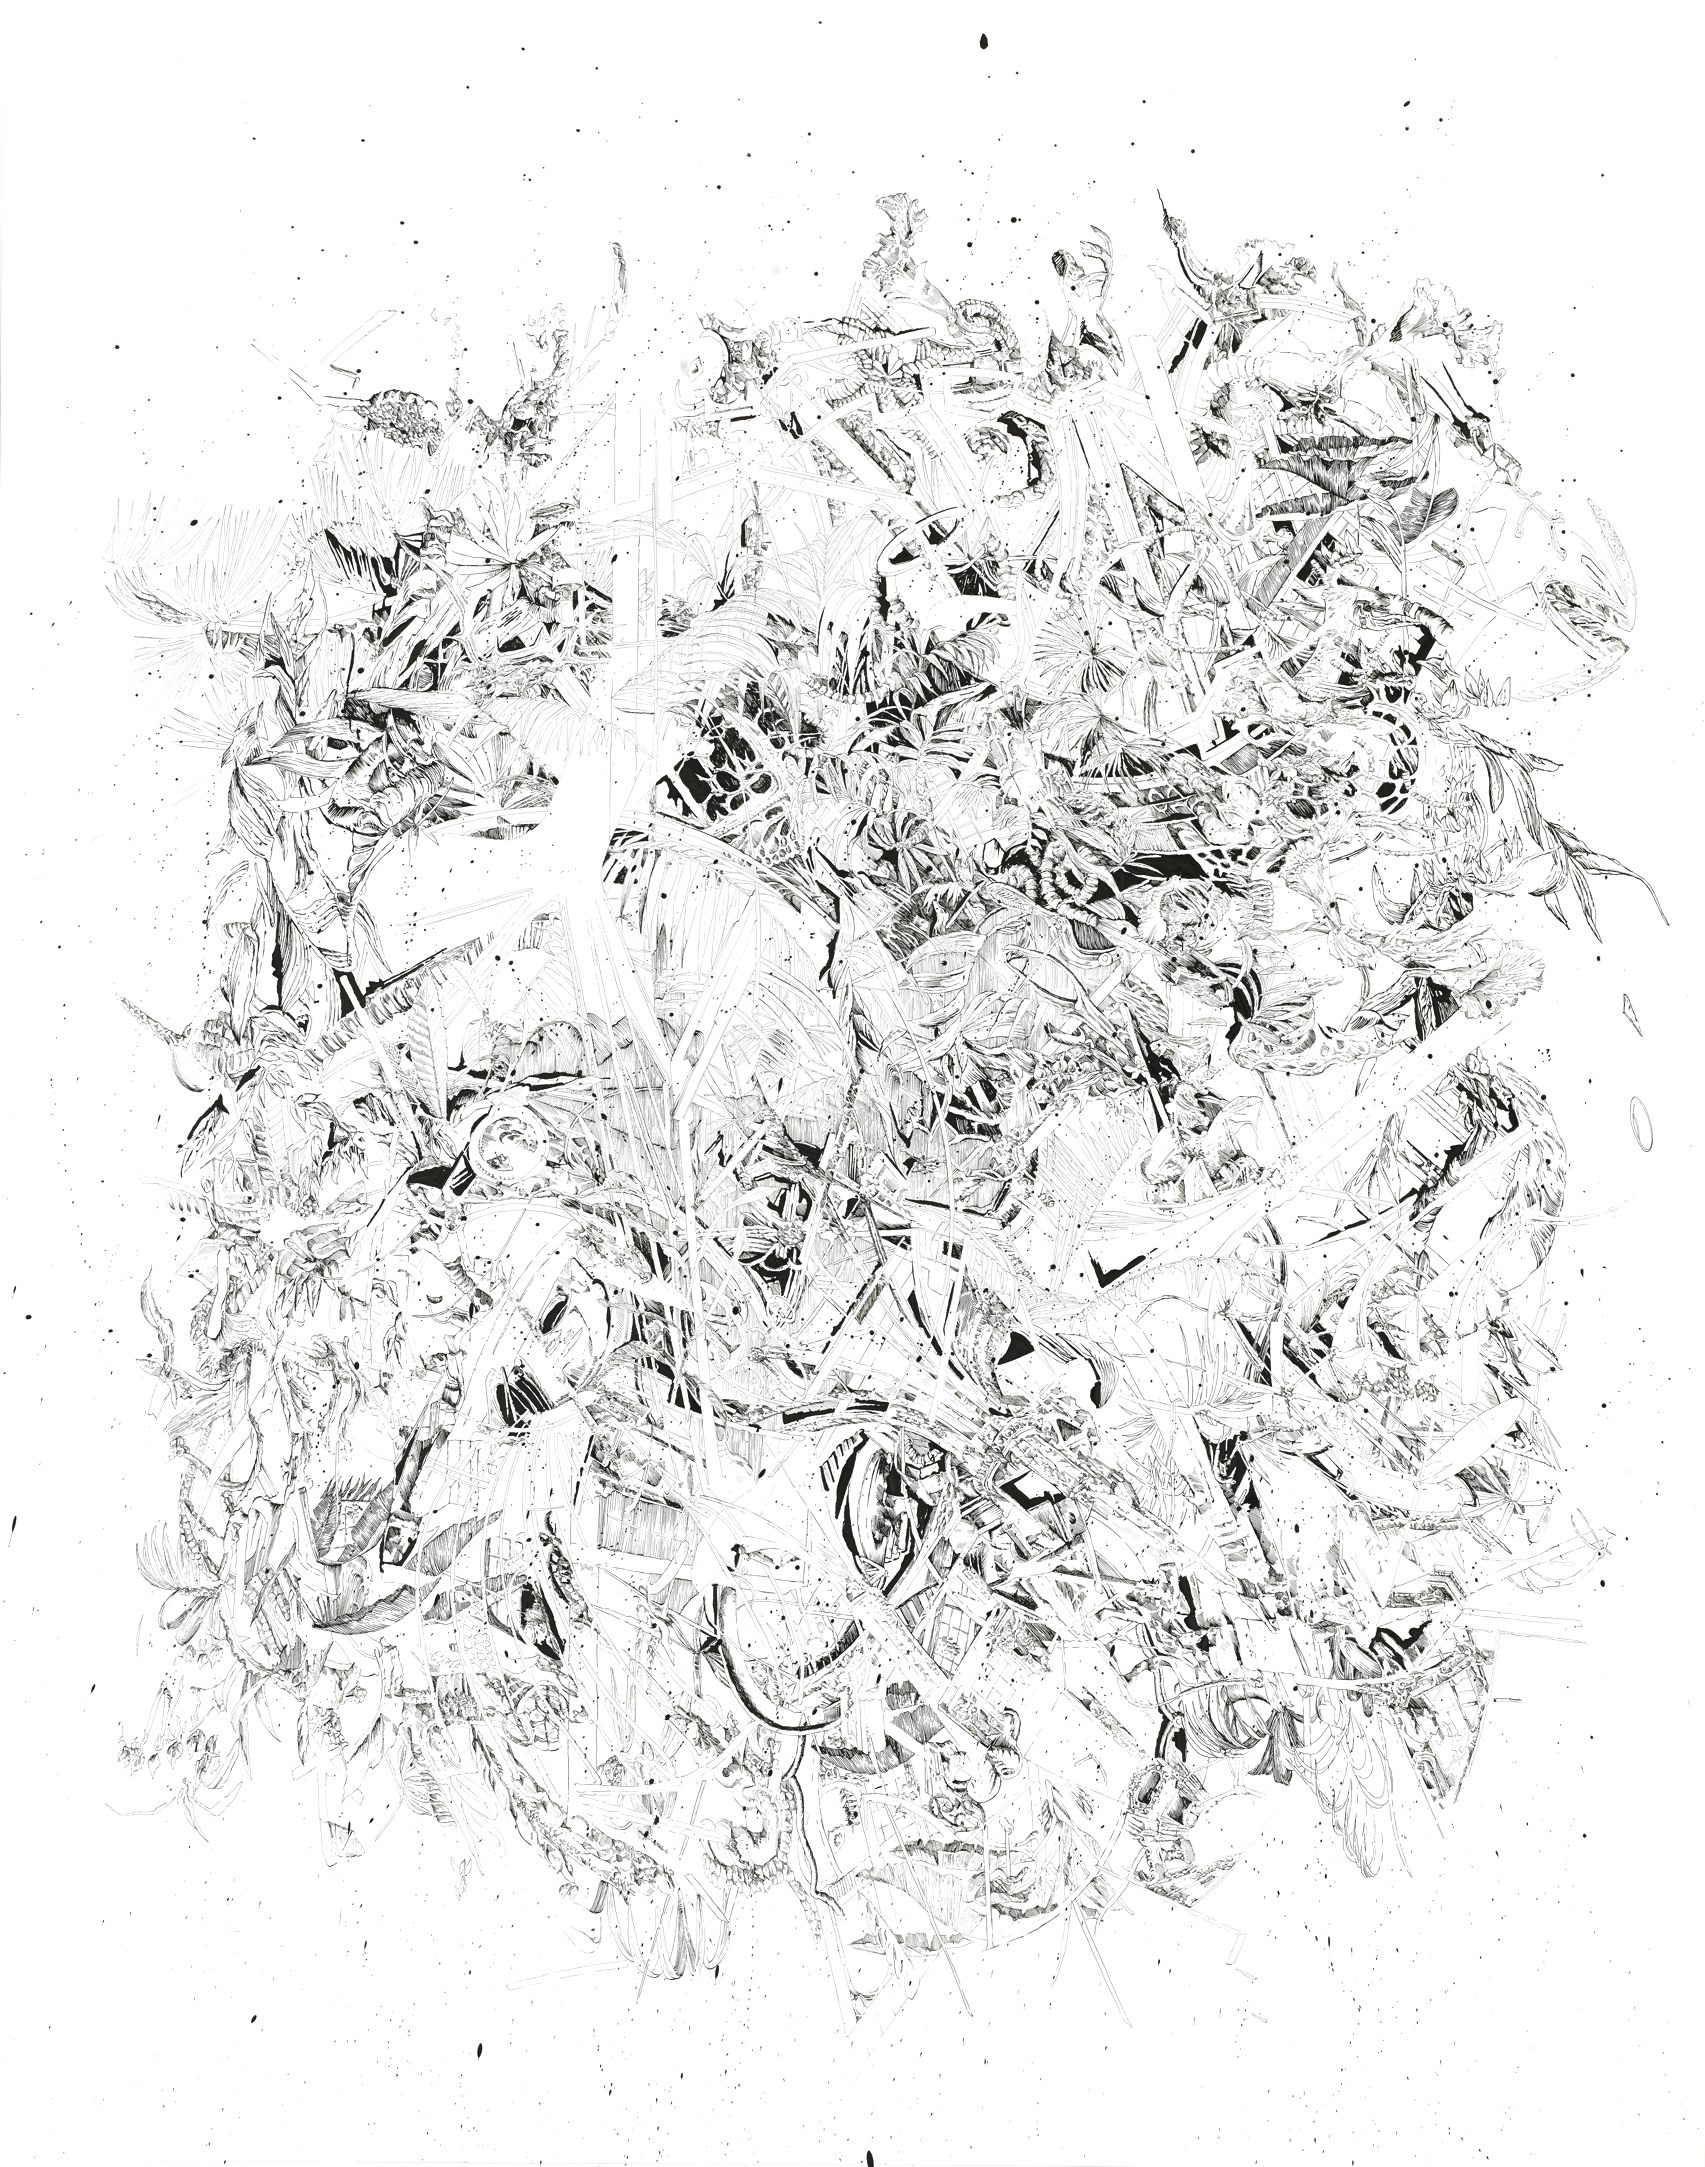 BK P159 | untitled | ink & a crylic on paper | 190x150cm | 2014 | privat collection zurich